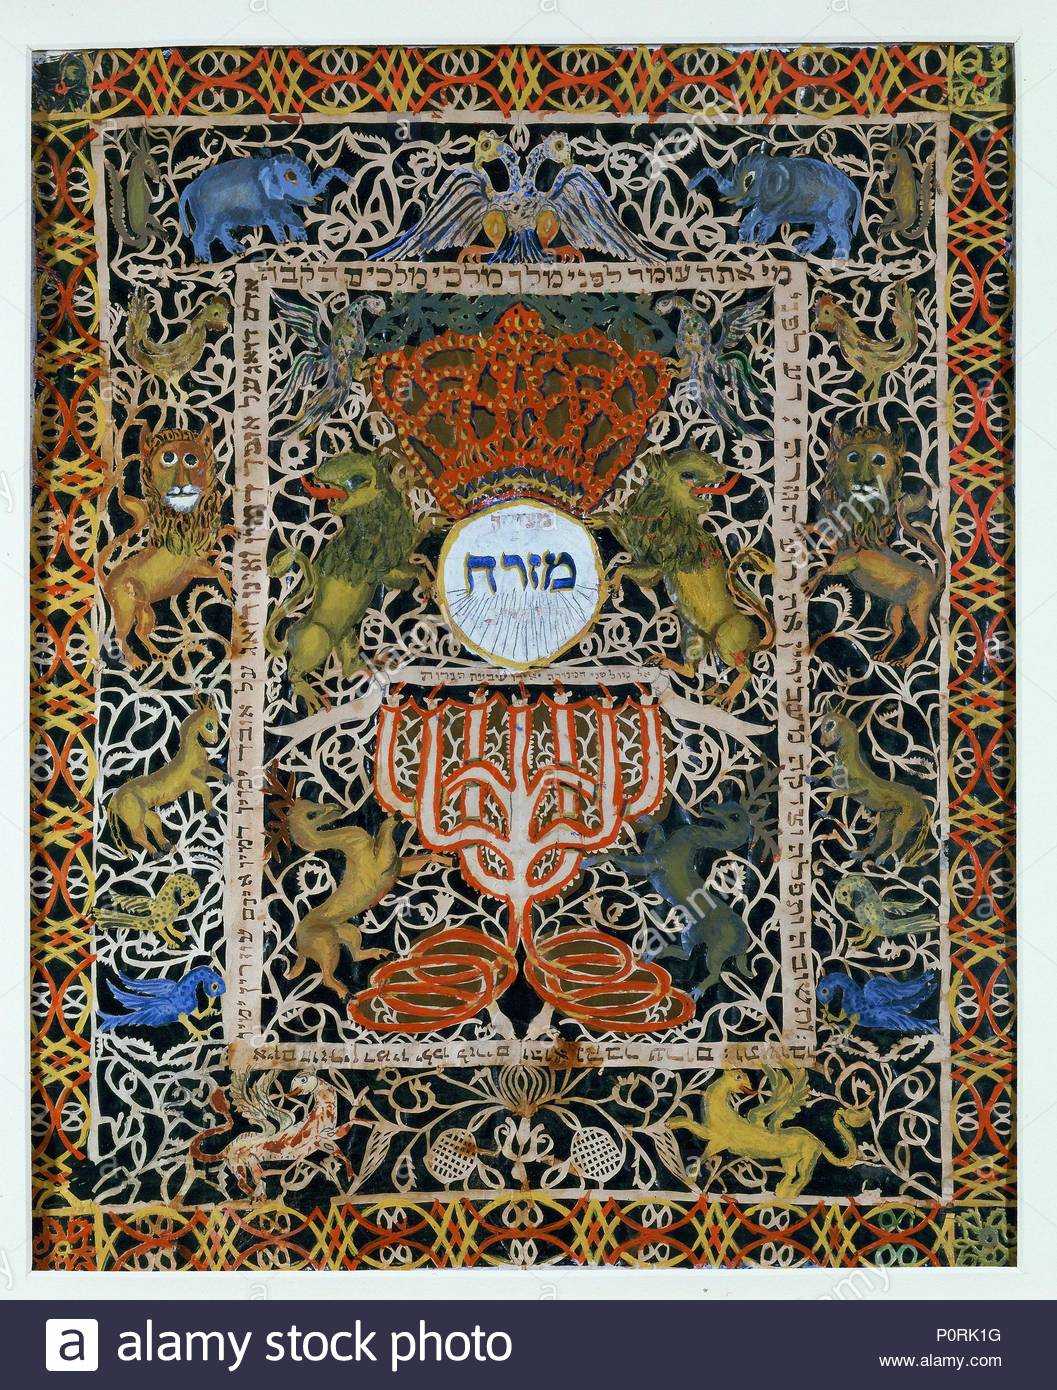 "Mizrach ("" East""), a decoration hung on the walls of a home or synagogue to indicate the direction or orientation for prayer, i. e. facing east towards Jerusalem. From Poland. Symmetrical paper cutout with ink and tempera, 43 x 34 cm. Location: Israel Museum, Jerusalem, Israel. - Stock Image"